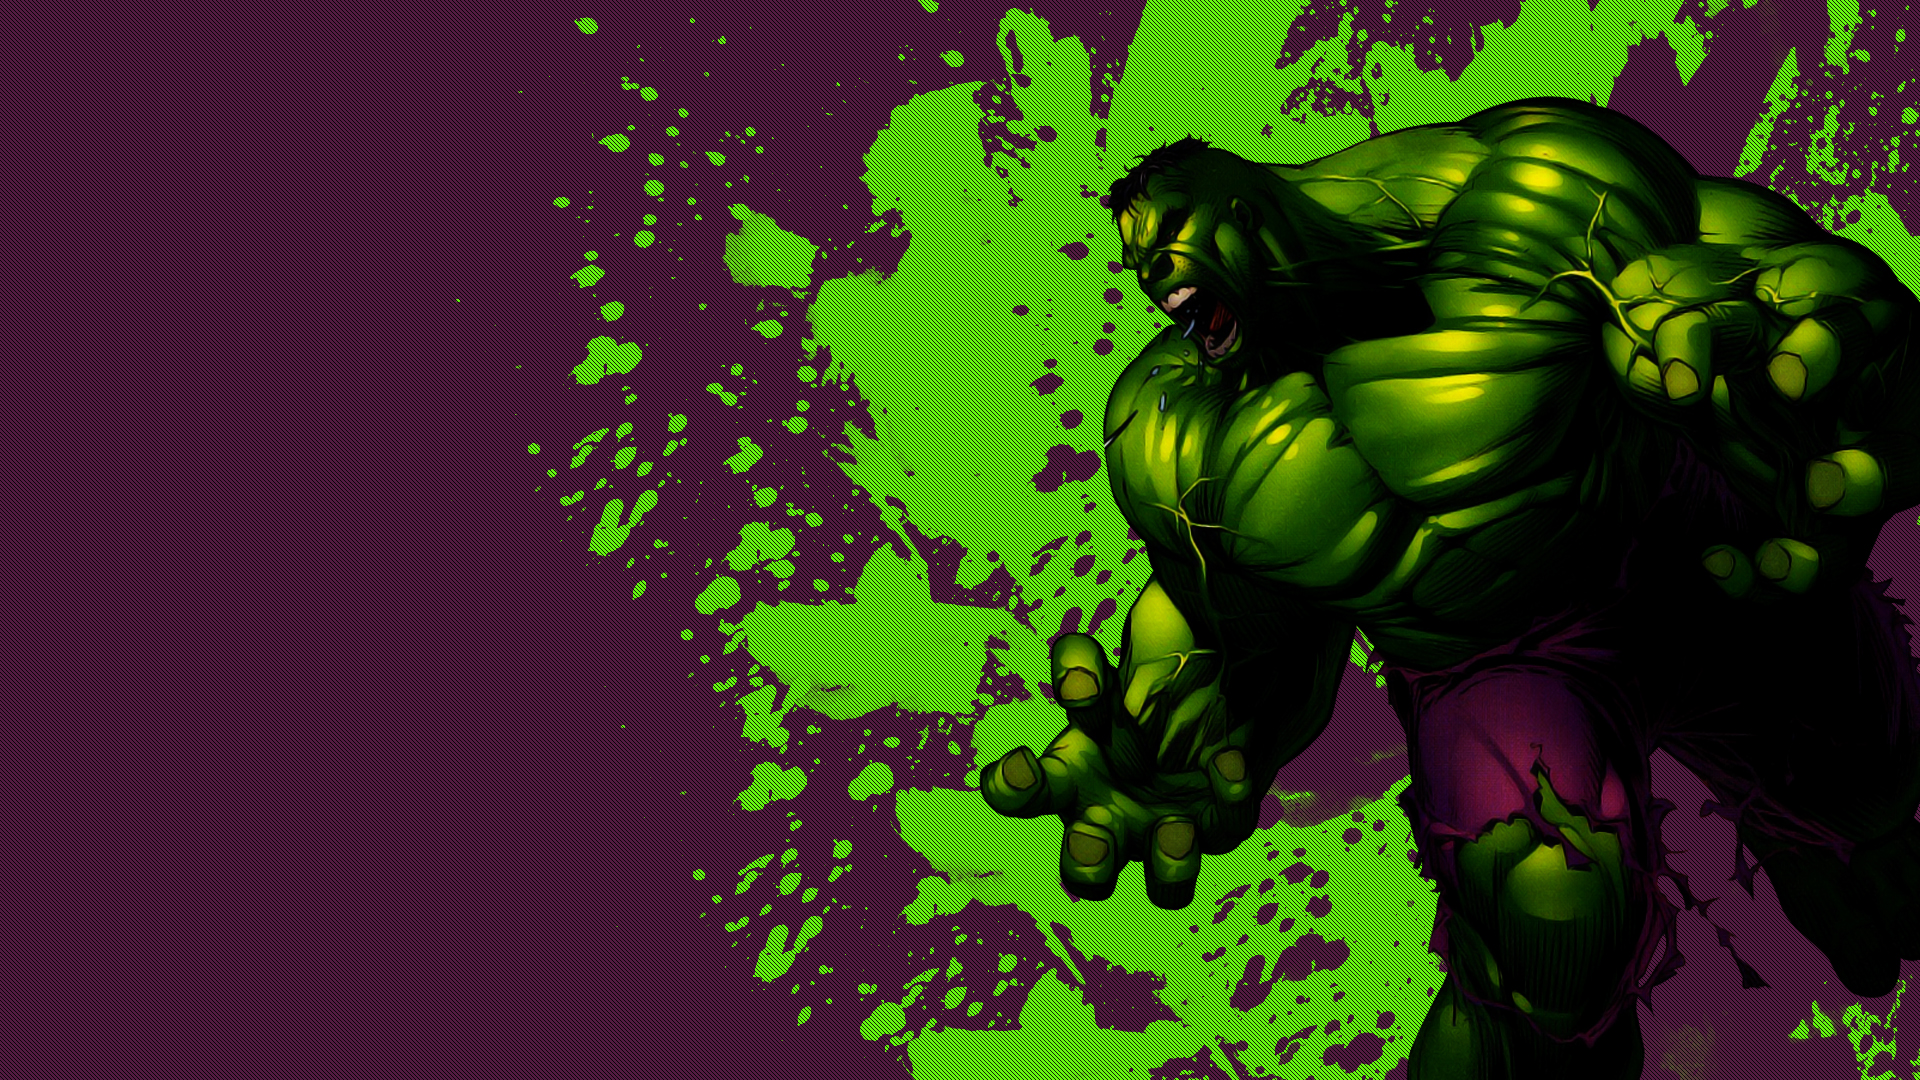 Incredible hulk wallpaper for desktop HD.